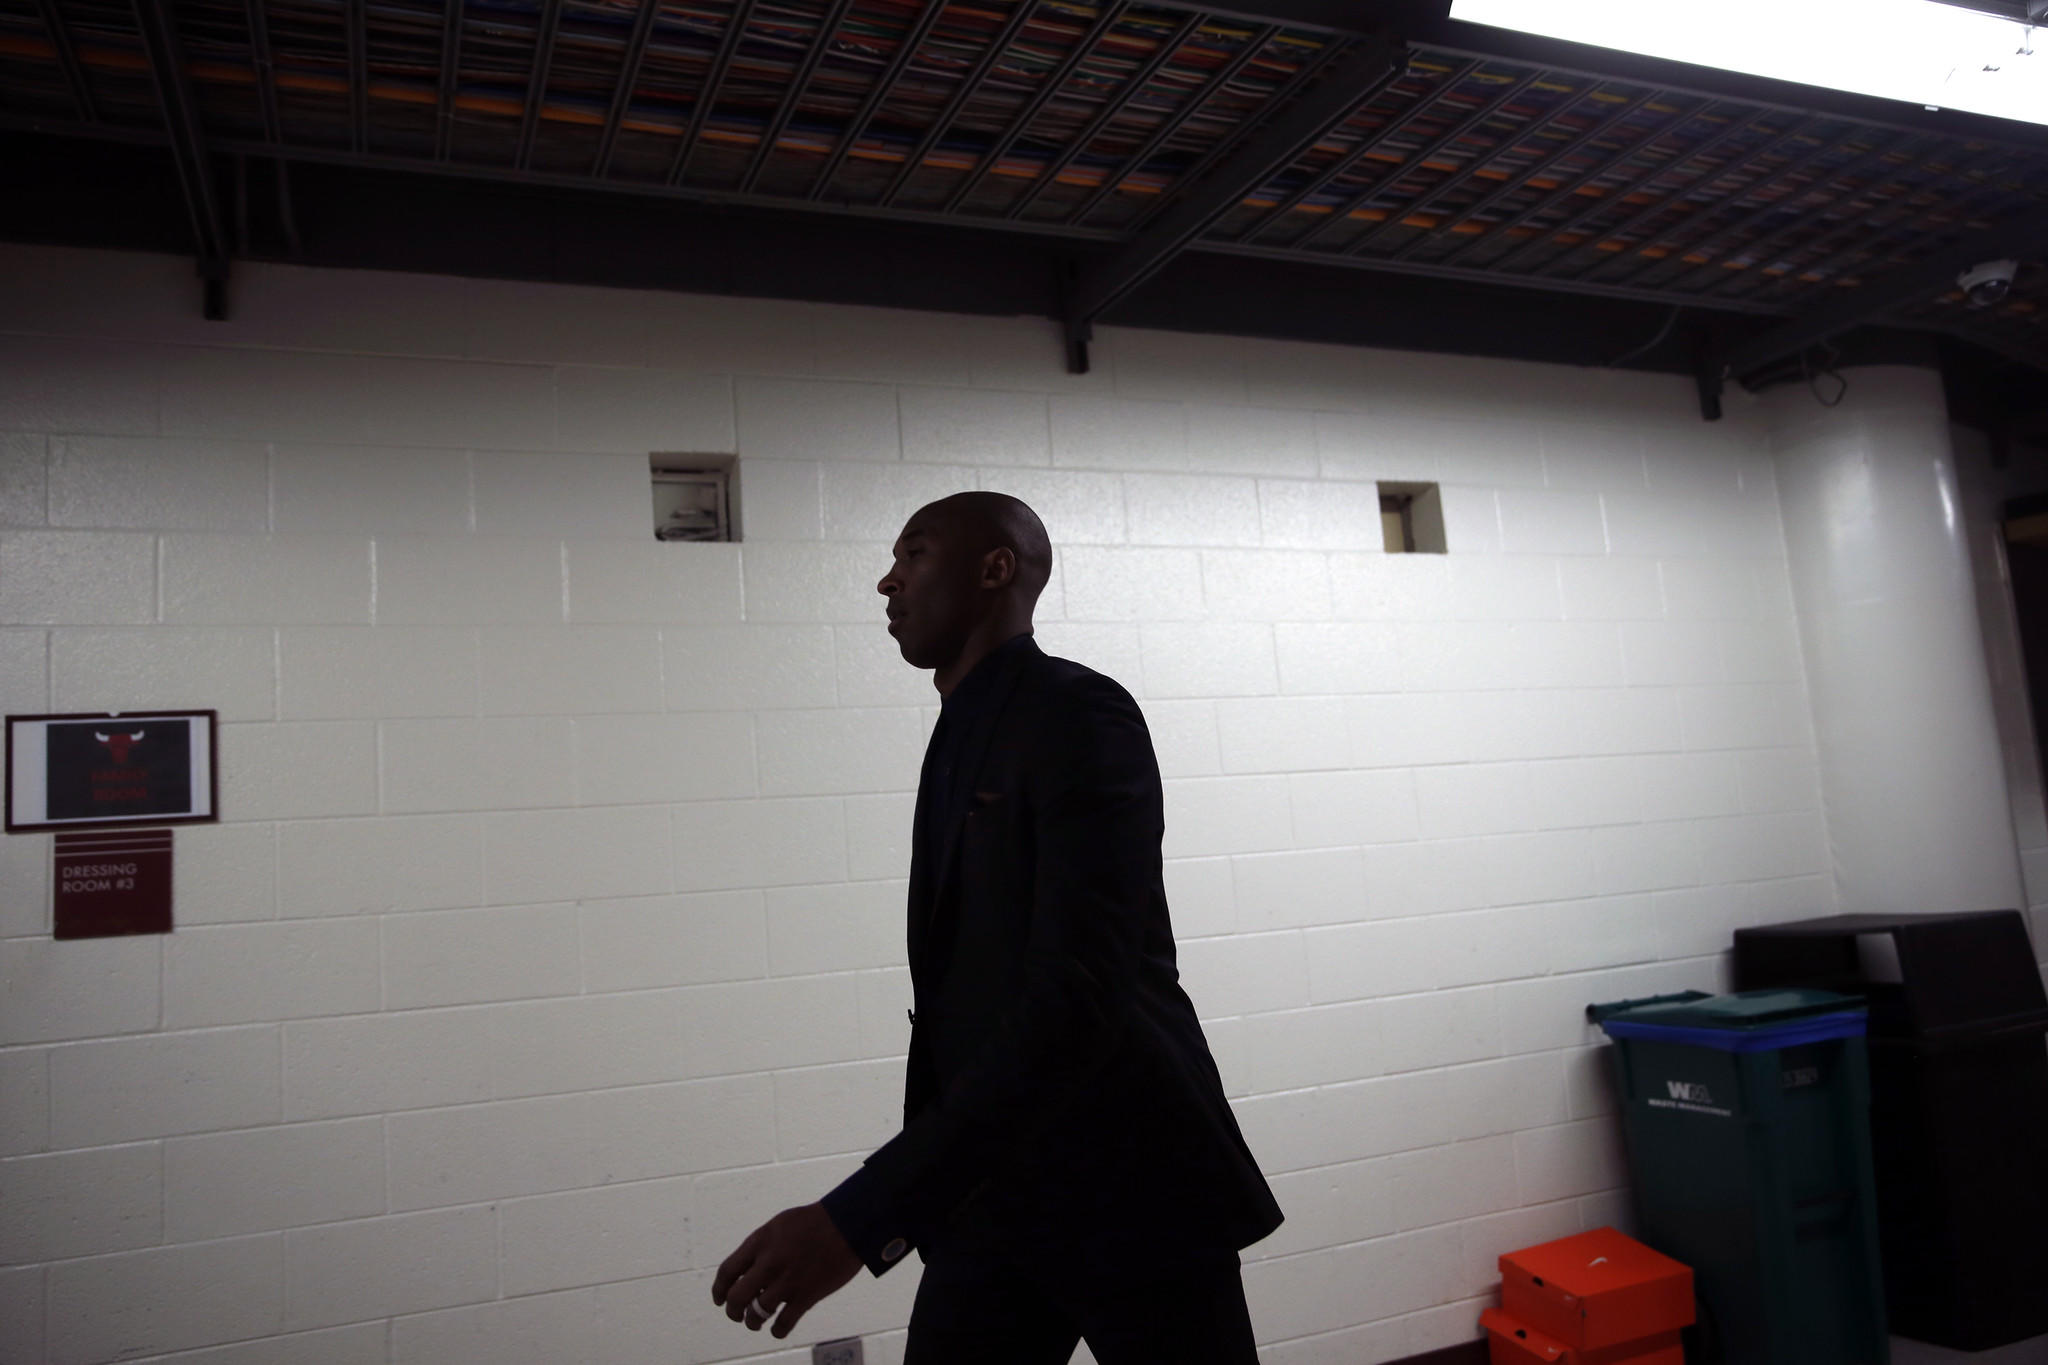 Los Angeles Lakers' Kobe Bryant heads to the locker room at half time of NBA game against Chicago Bulls at United Center.